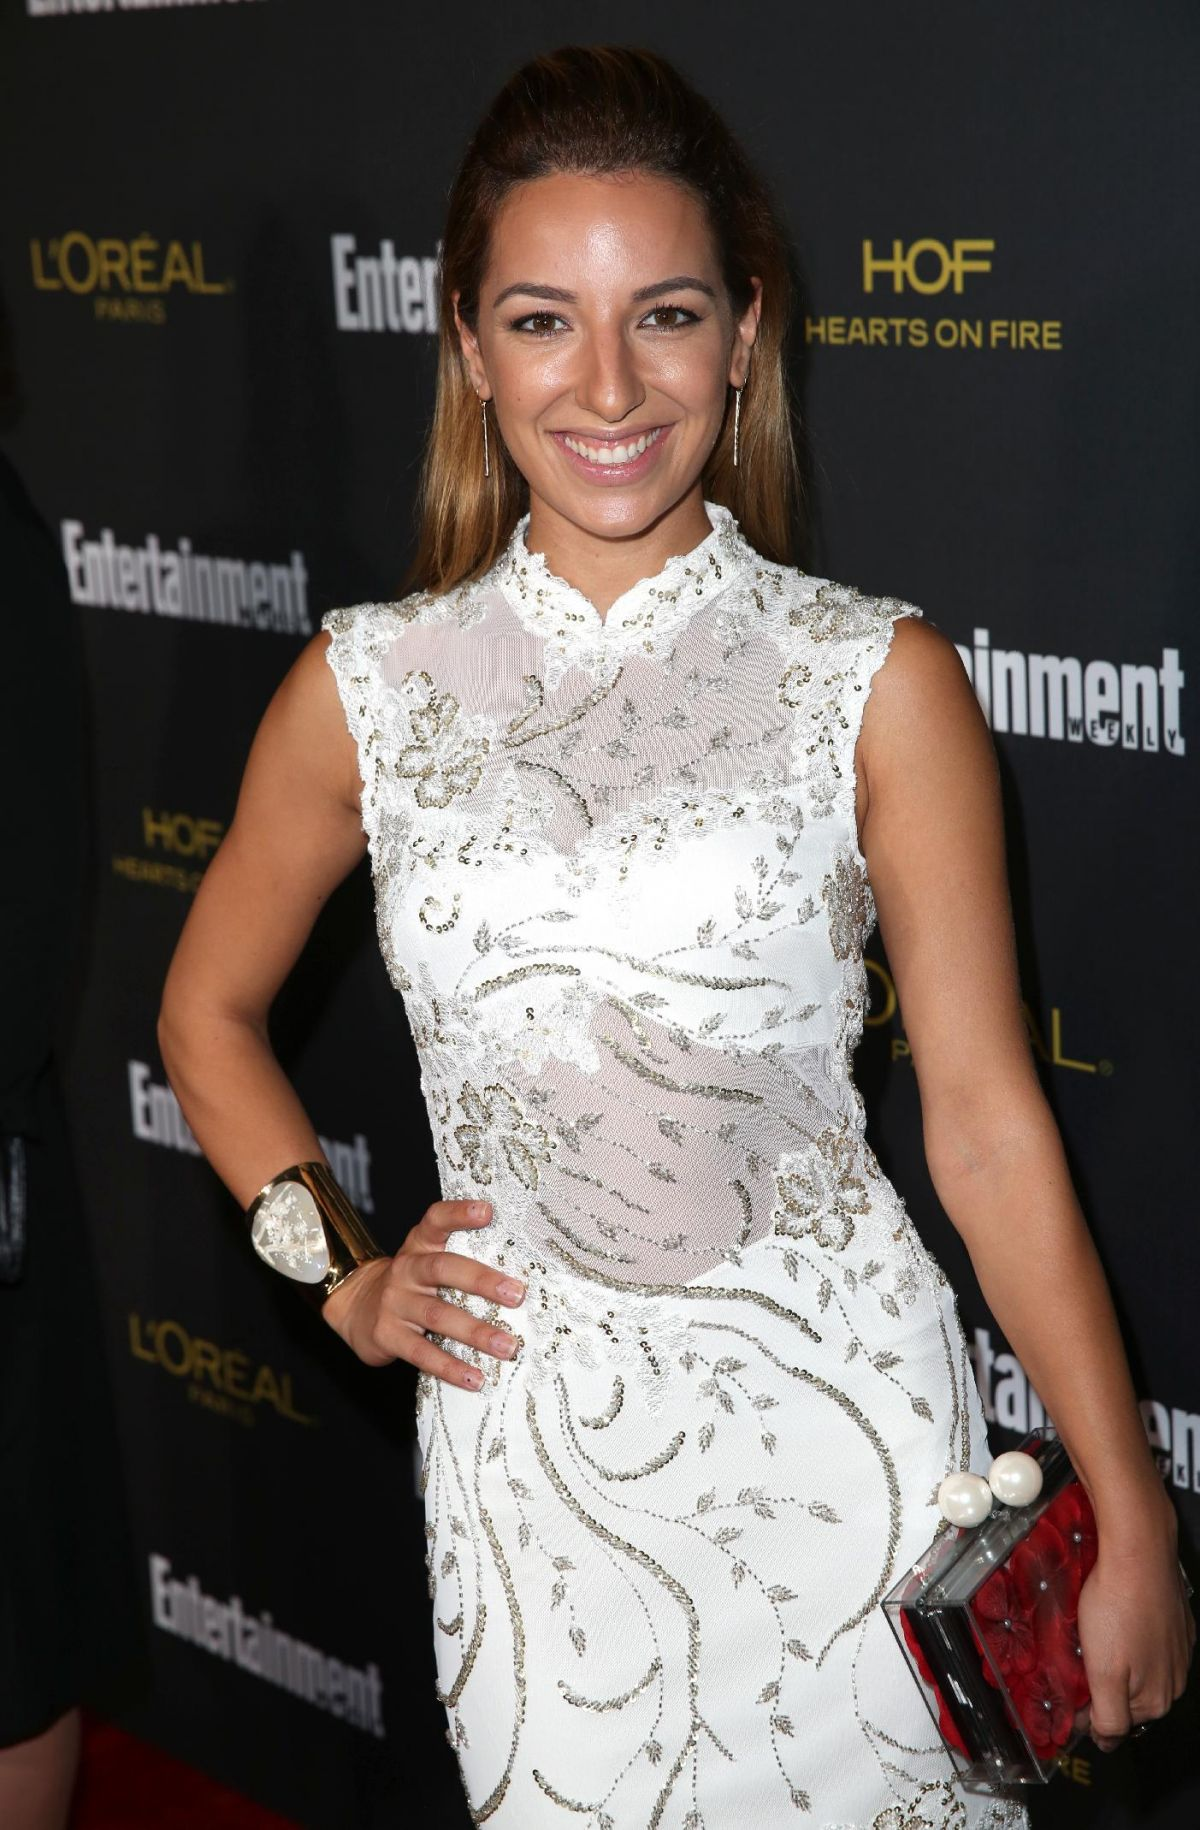 VANESSA LENGIES at Entertainment Weekly's Pre-emmy Party